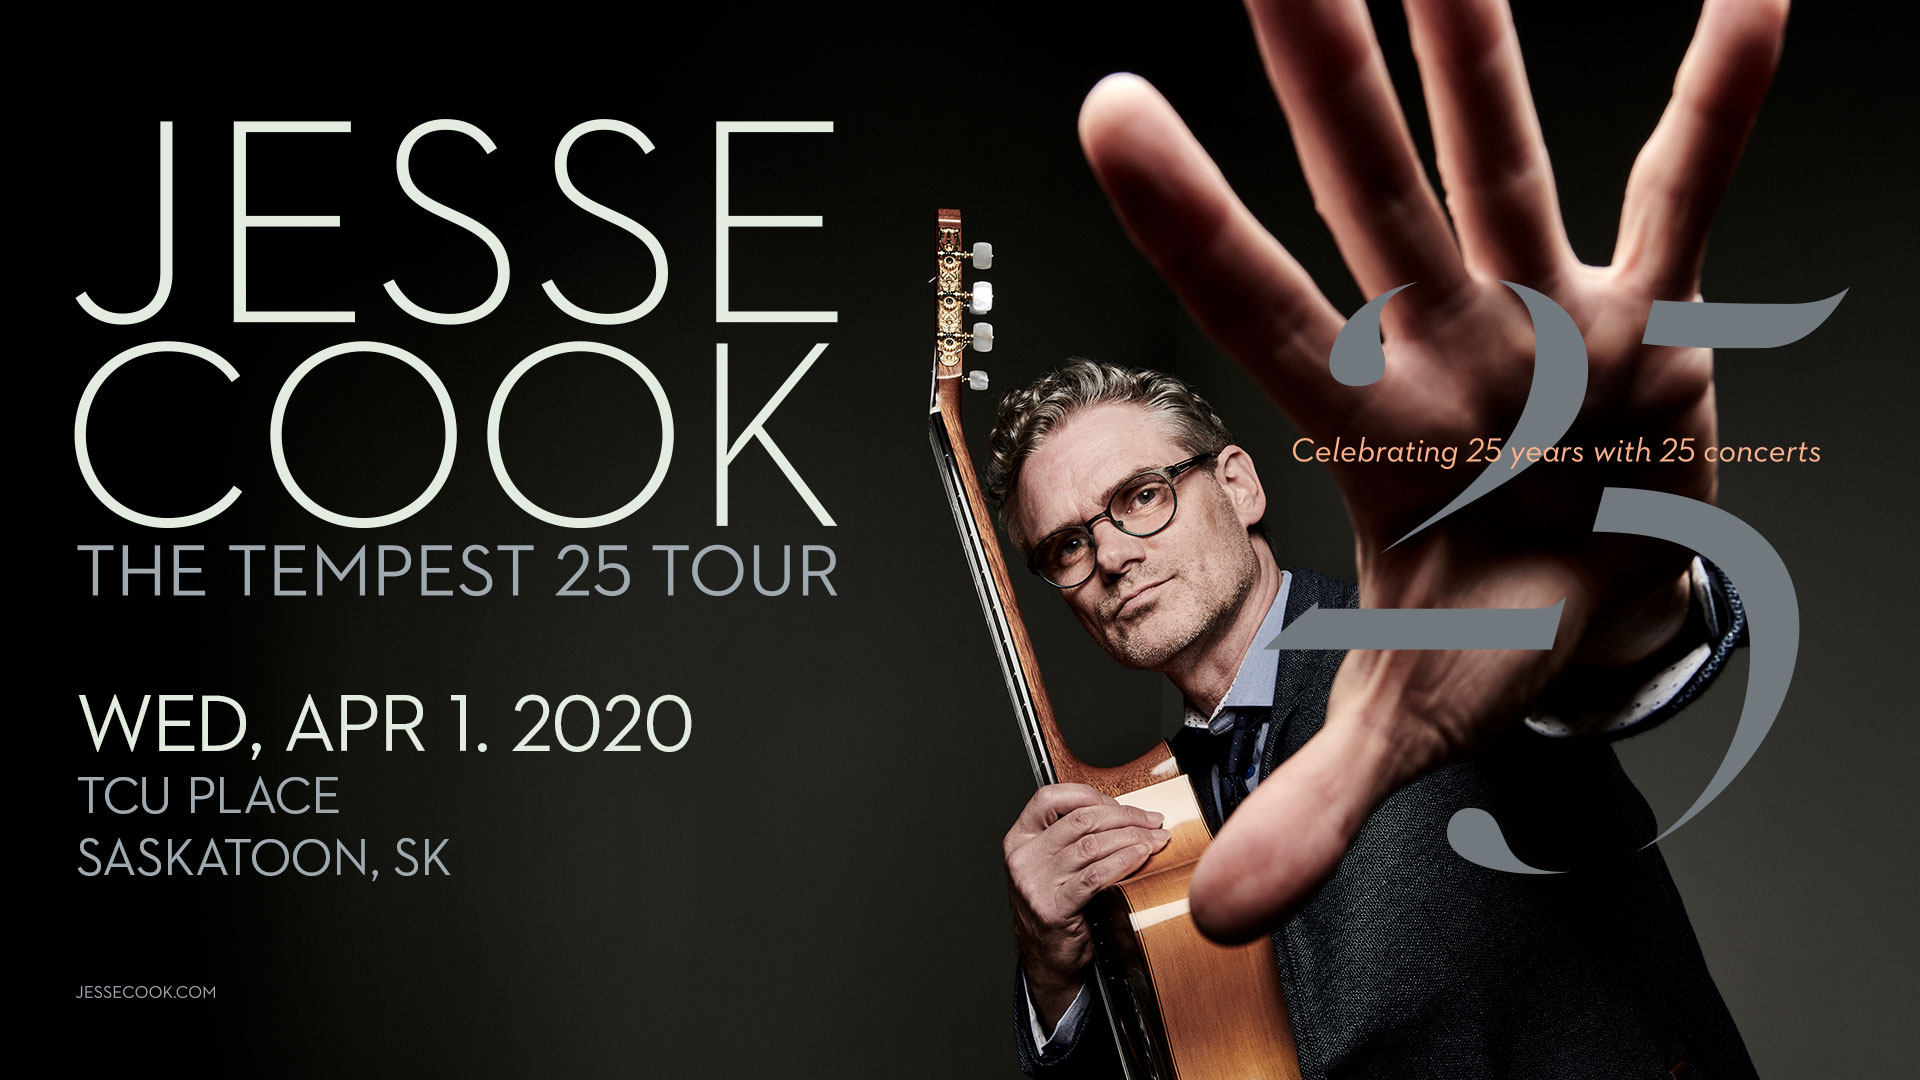 Jesse Cook - The Tempest 25 Tour - Celebrating 25 years with 25 concerts